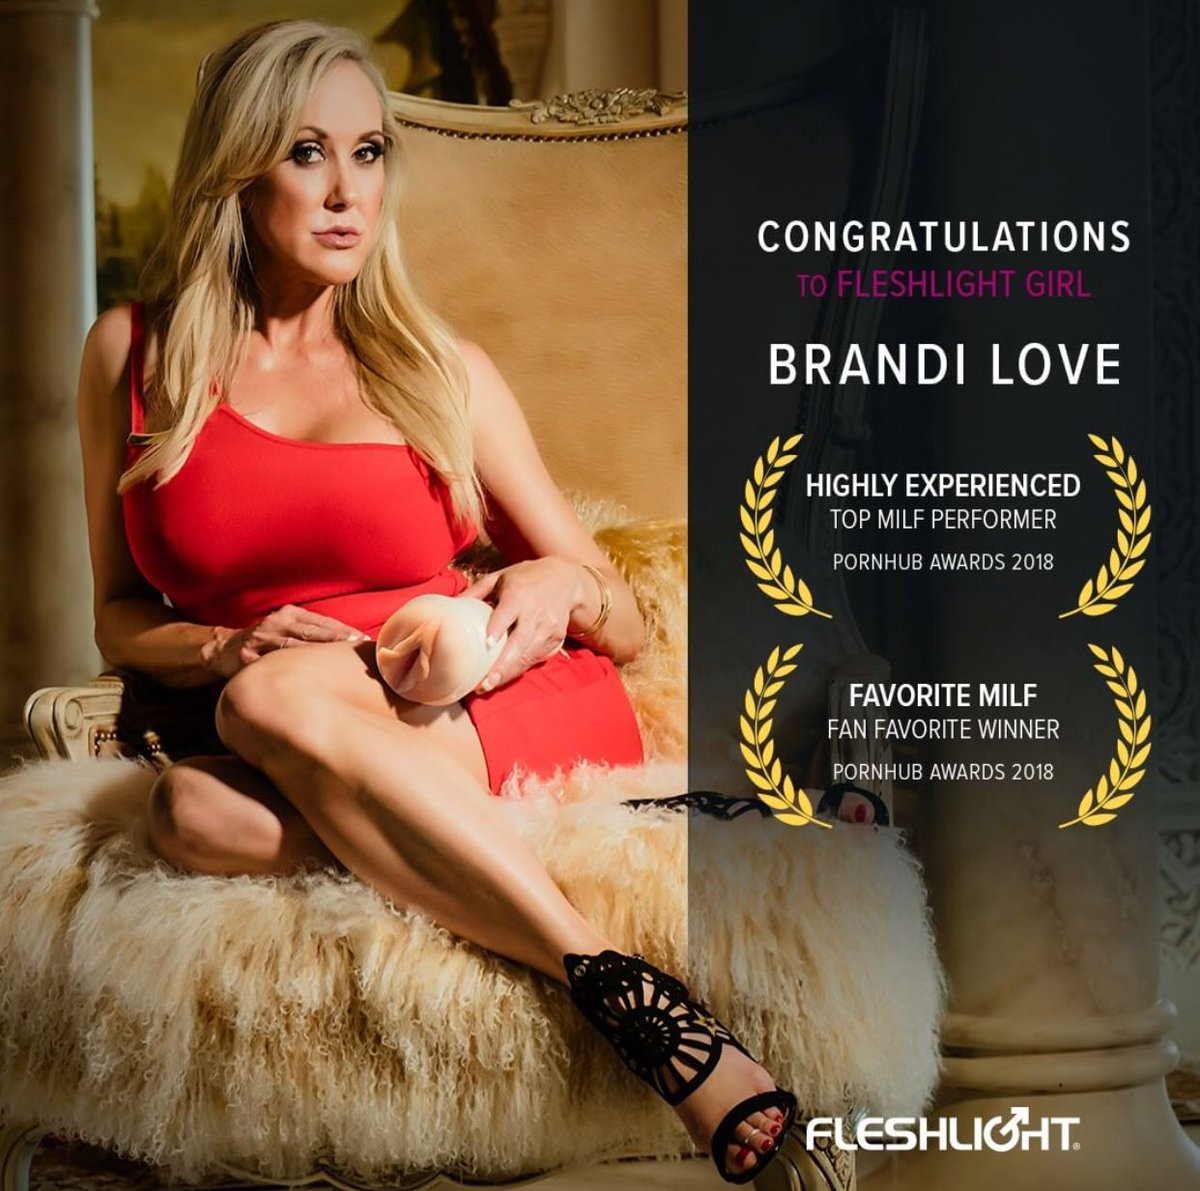 Brandi Love ® on Twitter: 🙏🏻 @pornhub for the awesome honor #Milf and @Fleshlight for providing